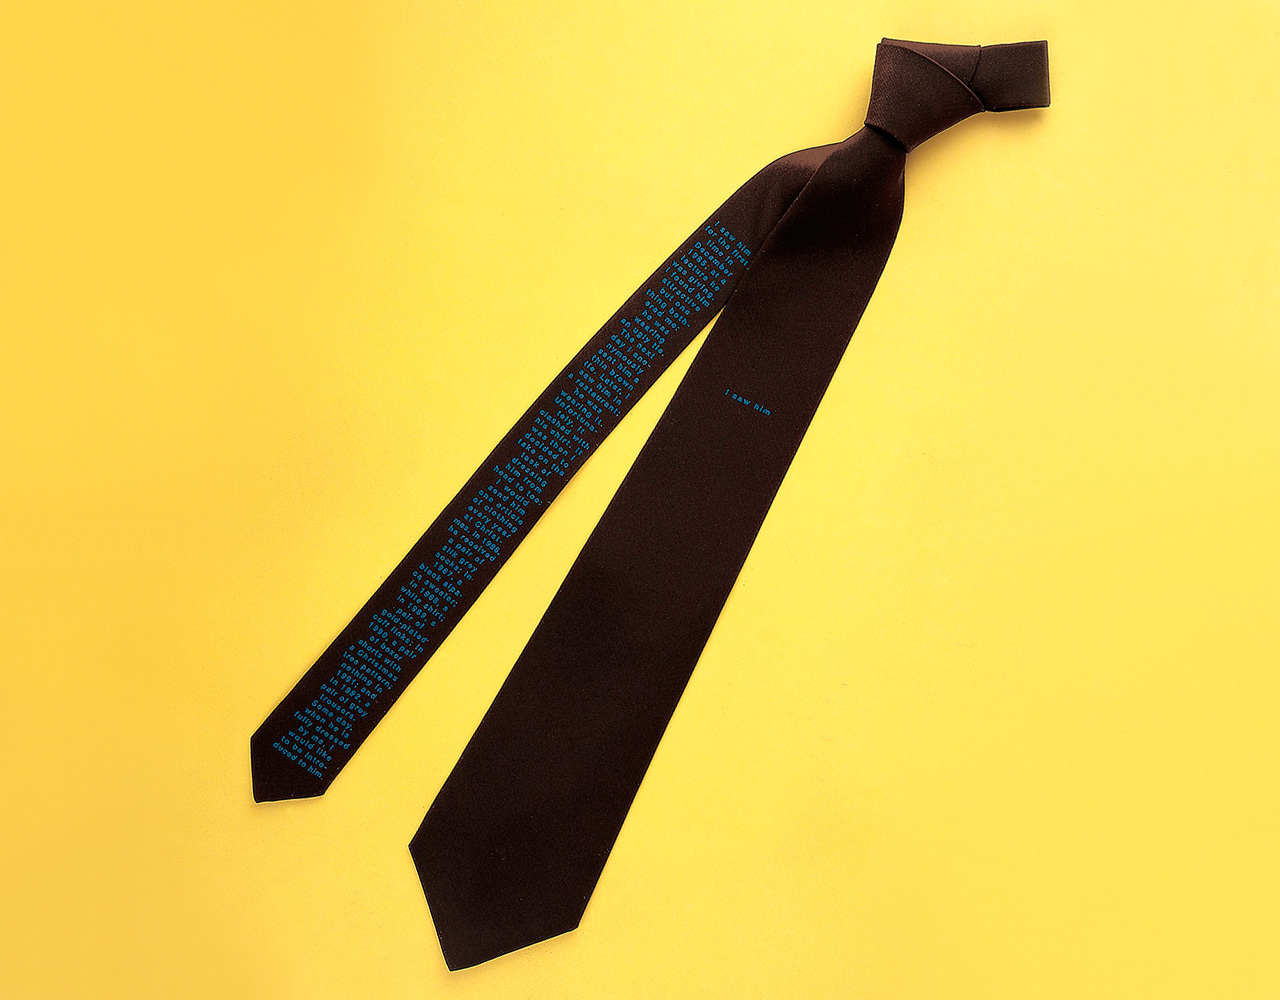 Sophie Calle, The Tie, 1993, Pure Silk, Edition of 150, 79.7 x 21.2 cm, Signed and numbered. Courtesy: Parkett, Zurich